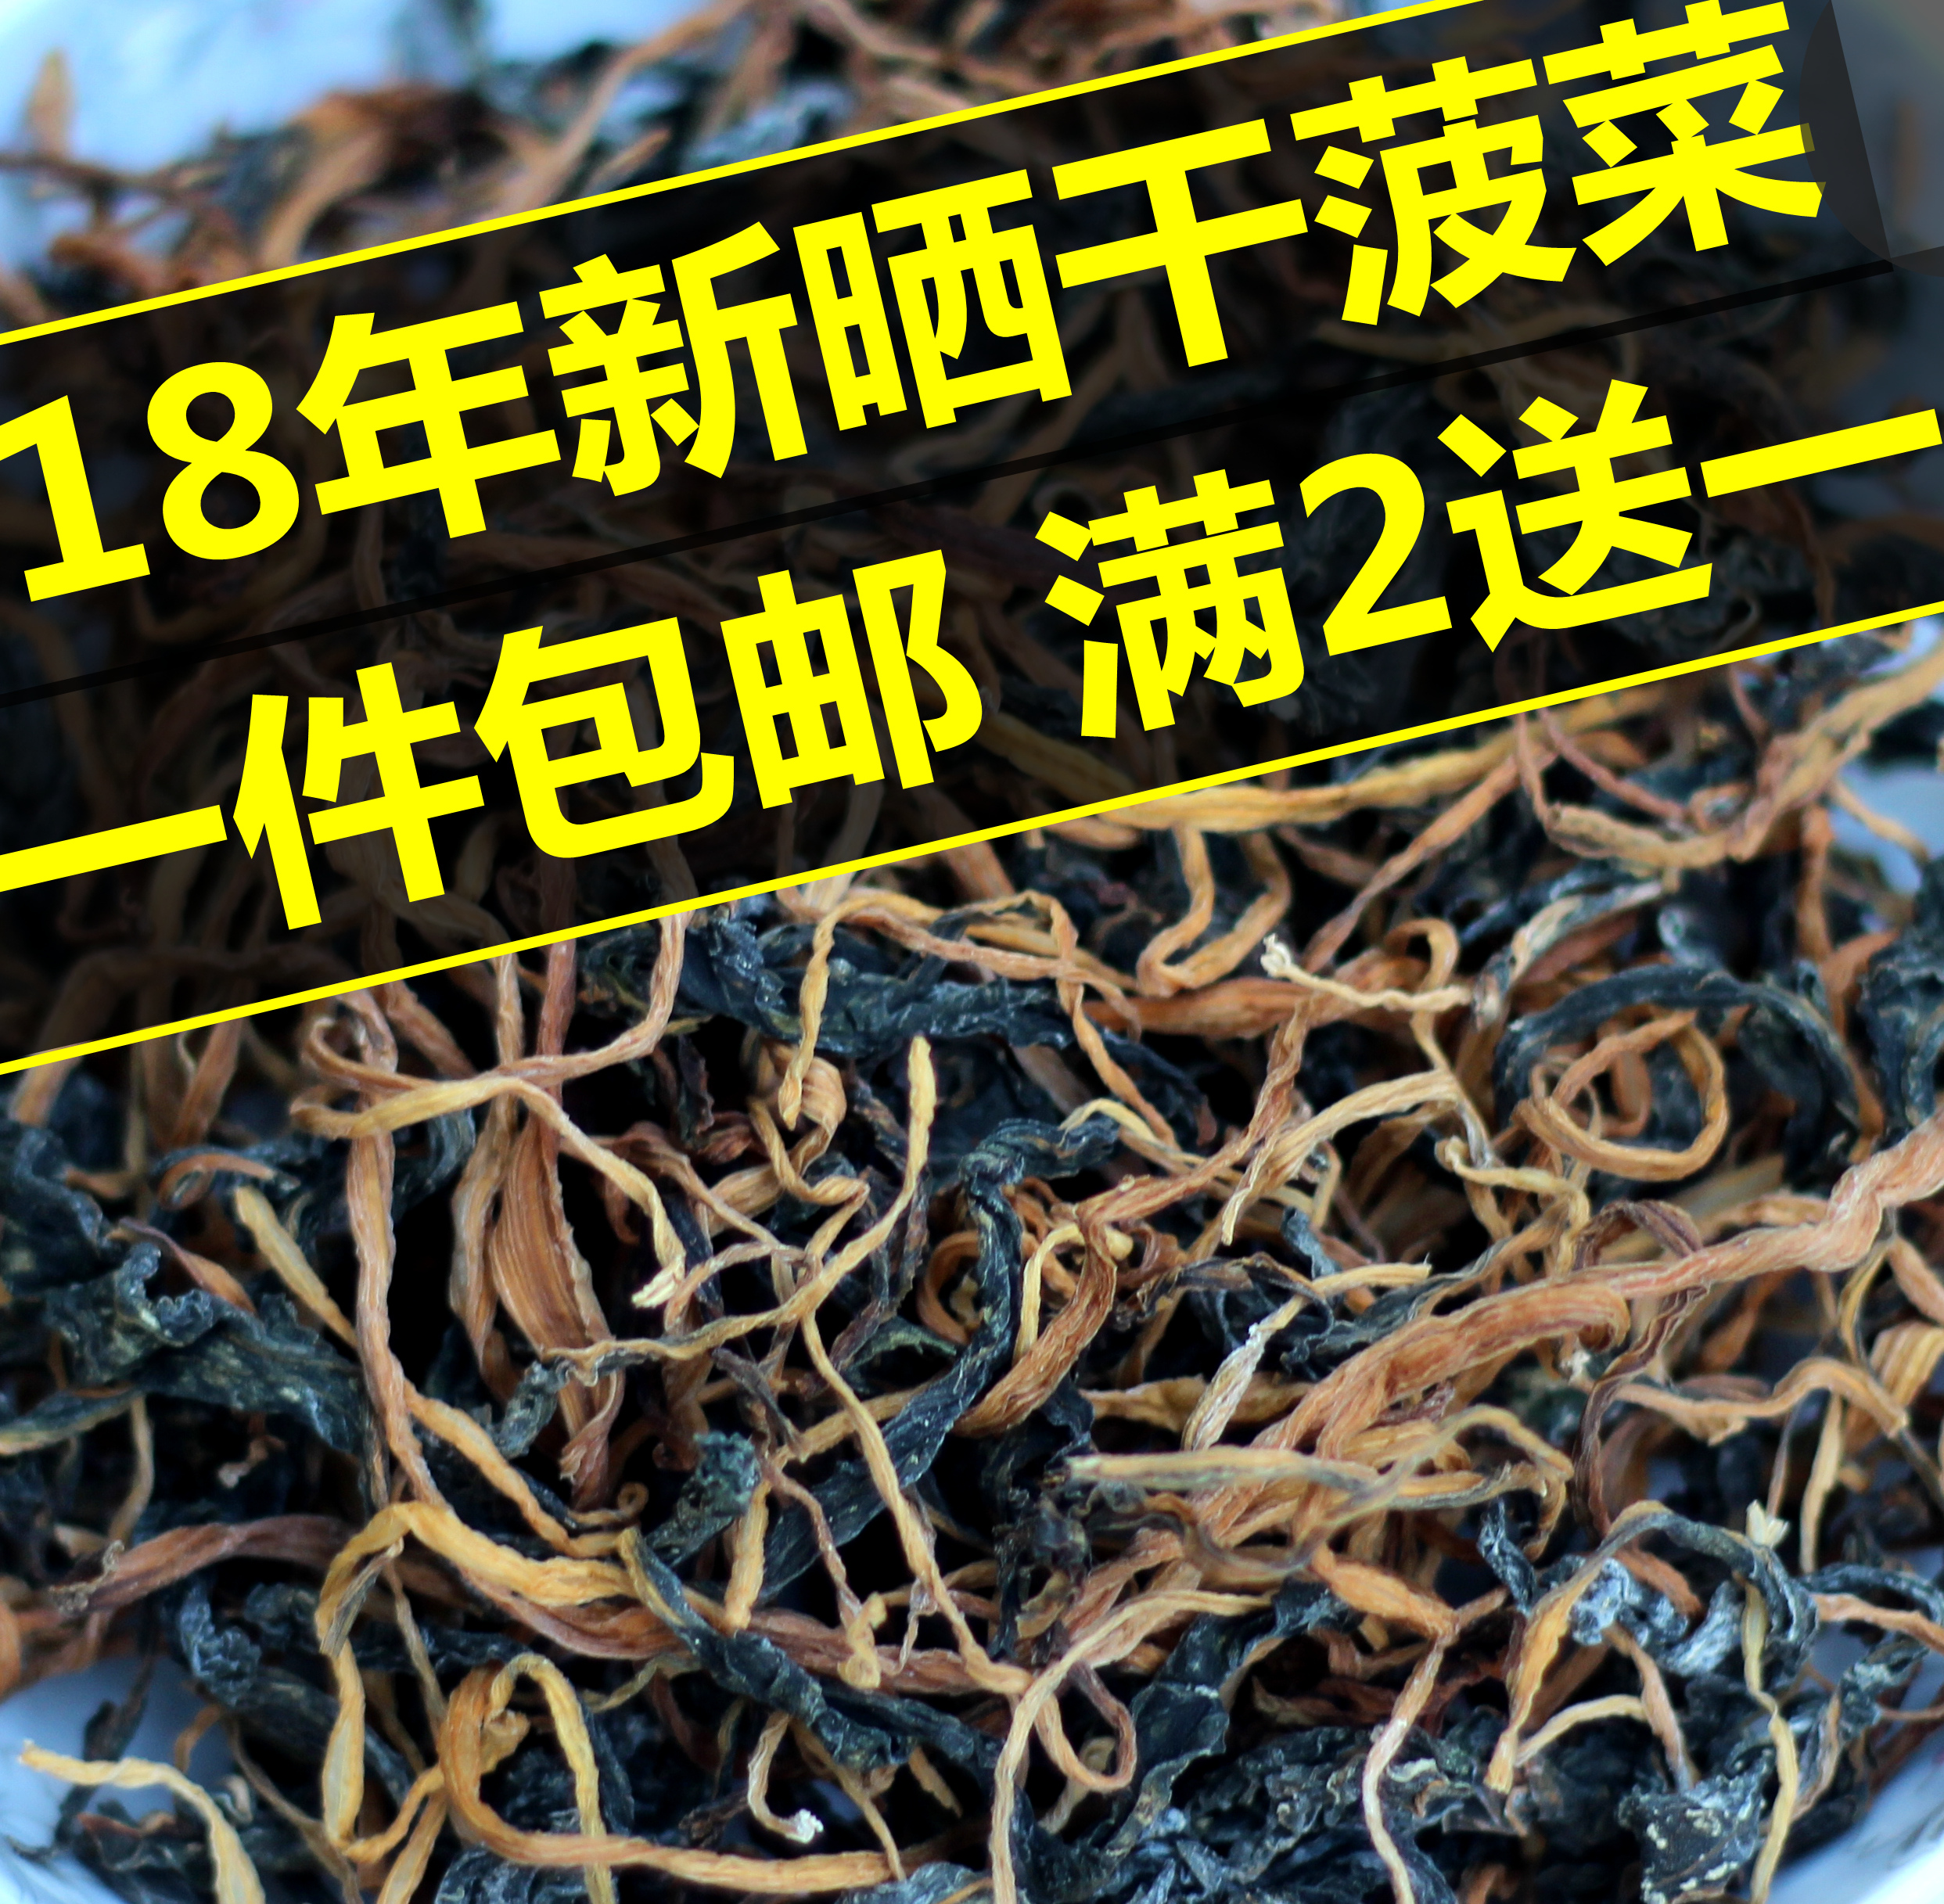 Homemade dried spinach dehydrated spinach dried goods dried spinach native specialty 250g steamed meat base of Hubei native specialty